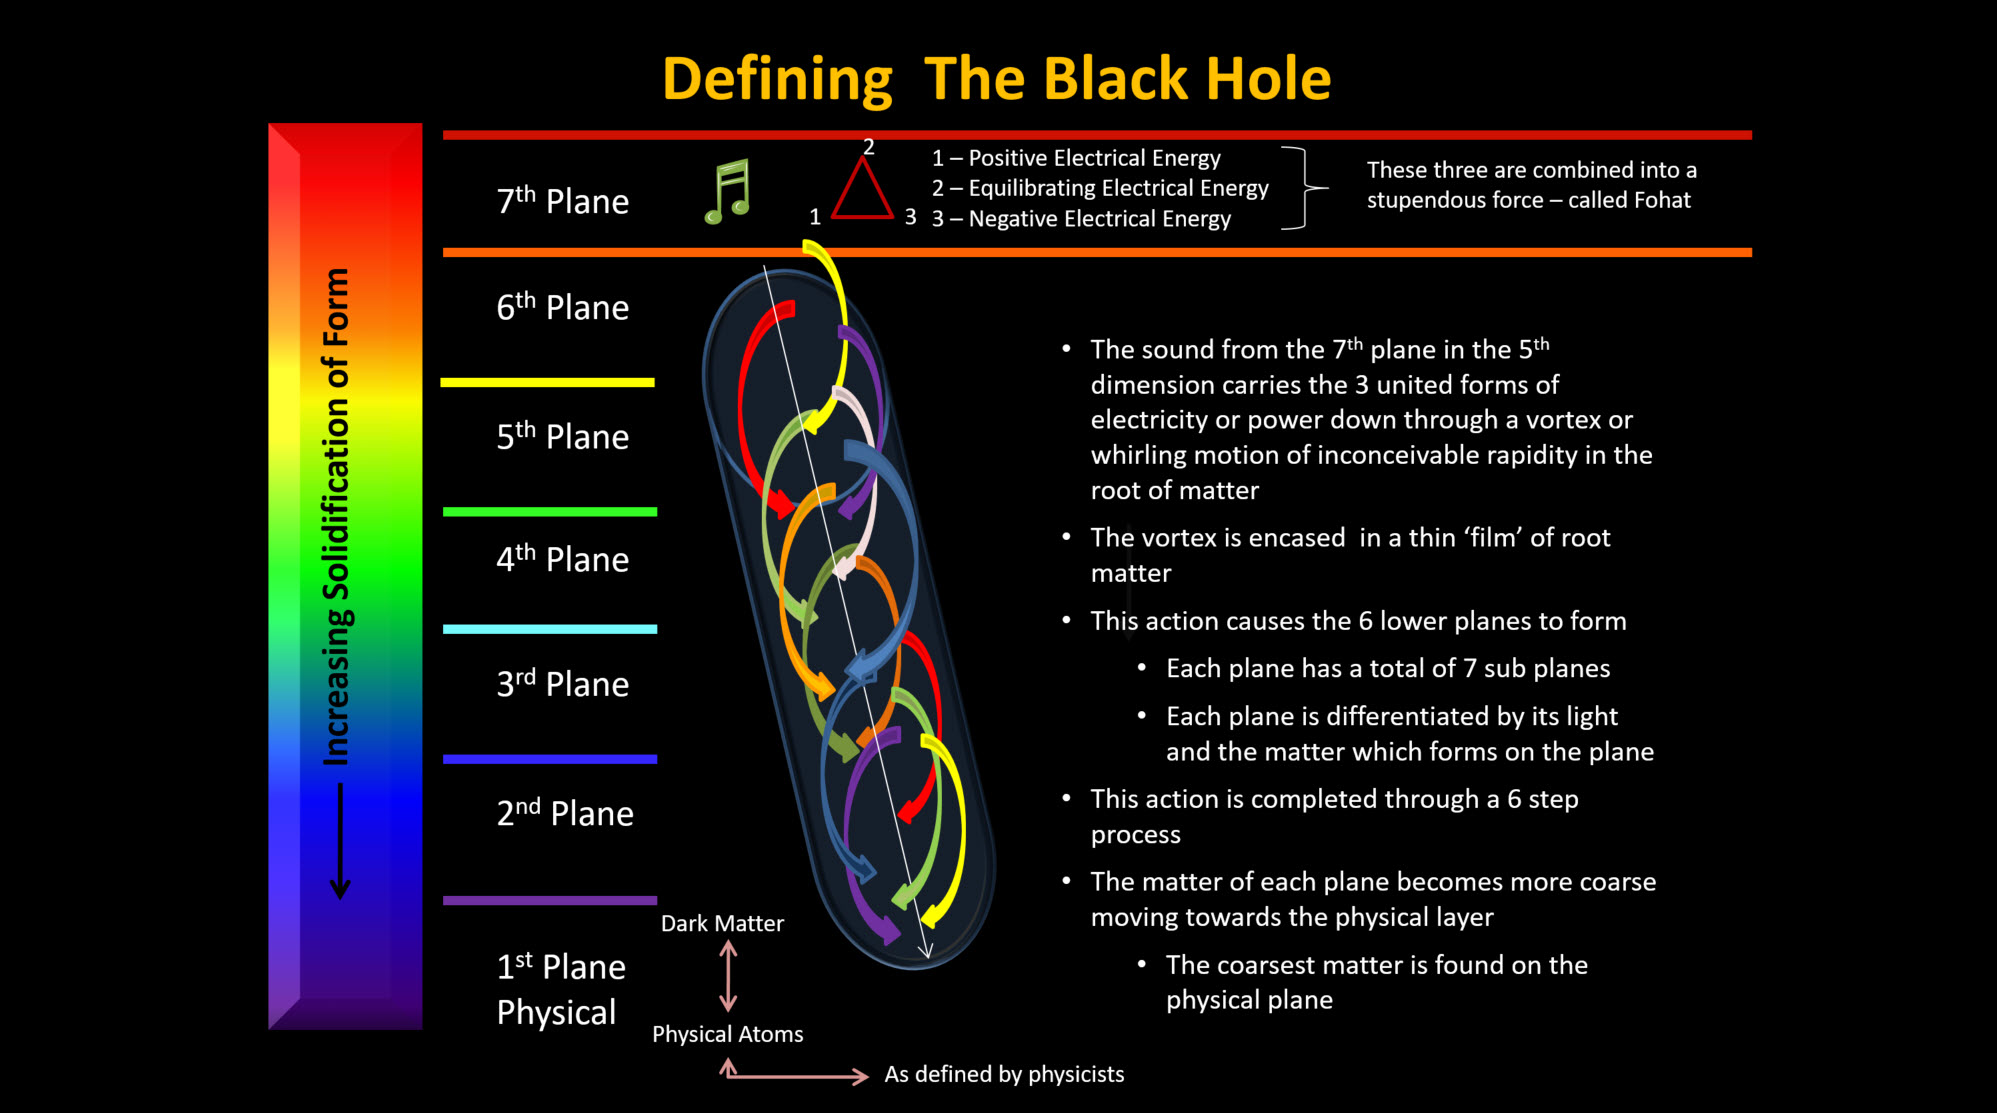 Defining the Black Hole